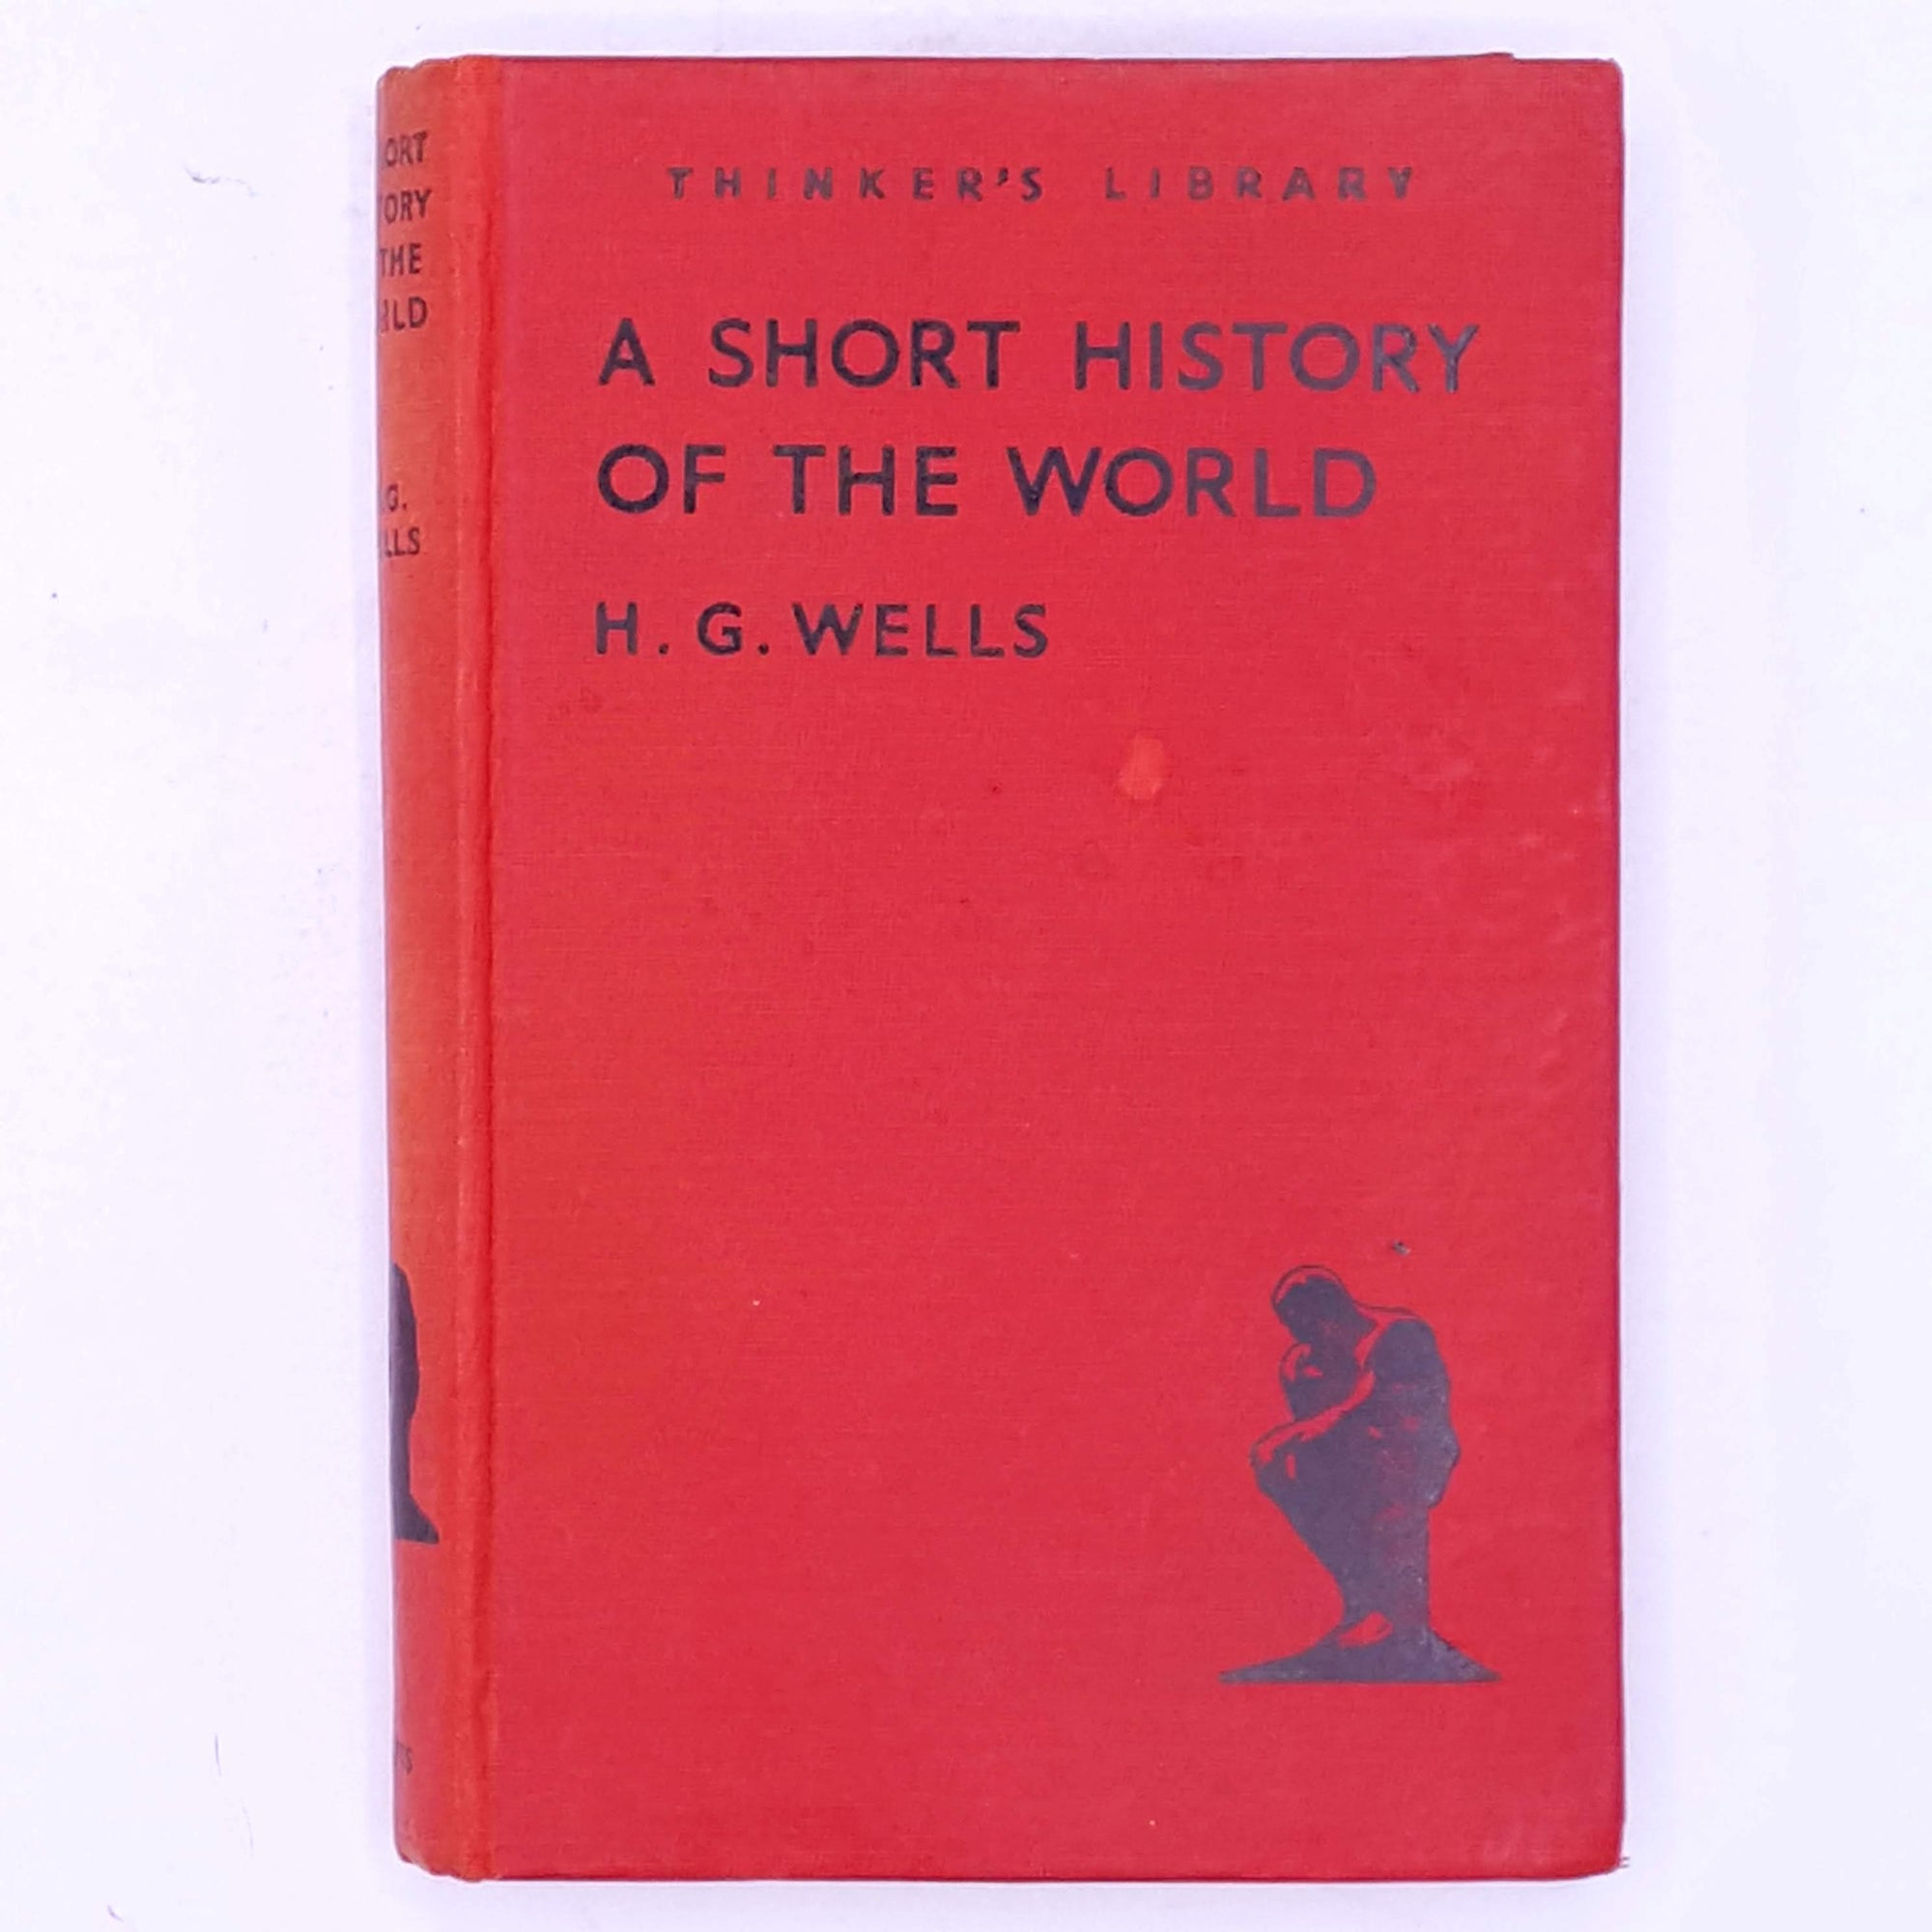 H.G. Wells, A Short History of the World, 1941.